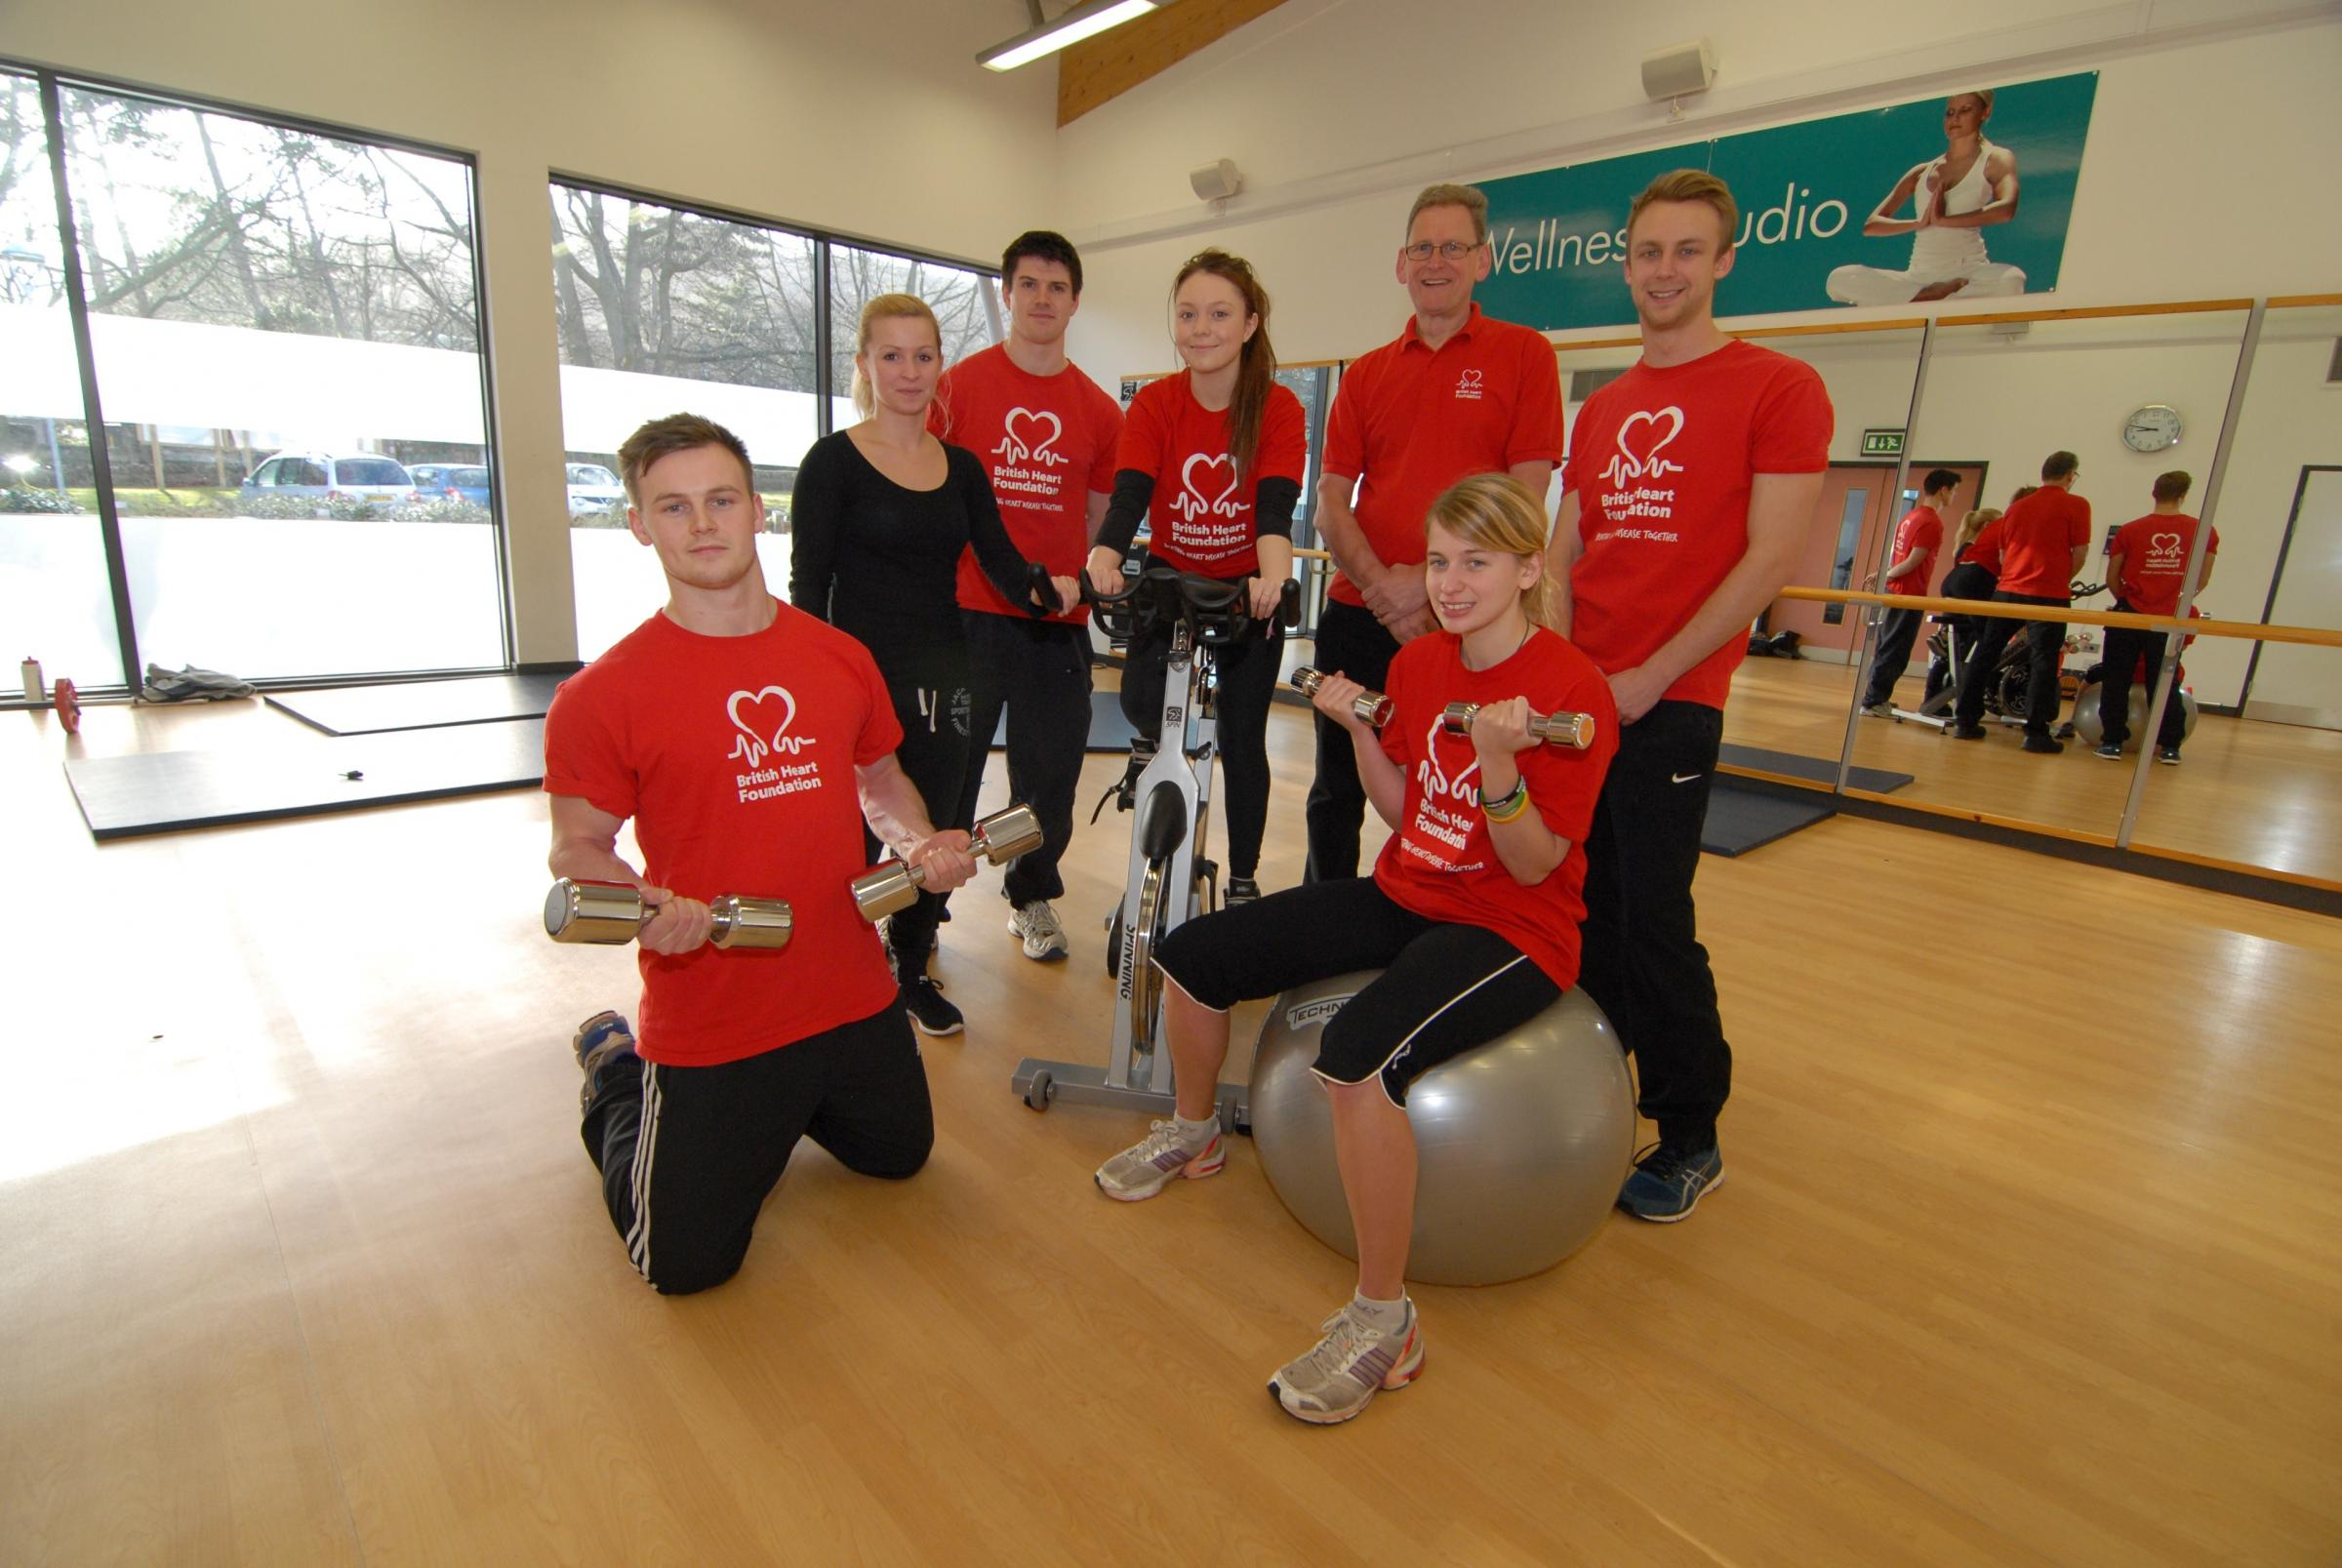 Fitness centre will be running in red for heart charity